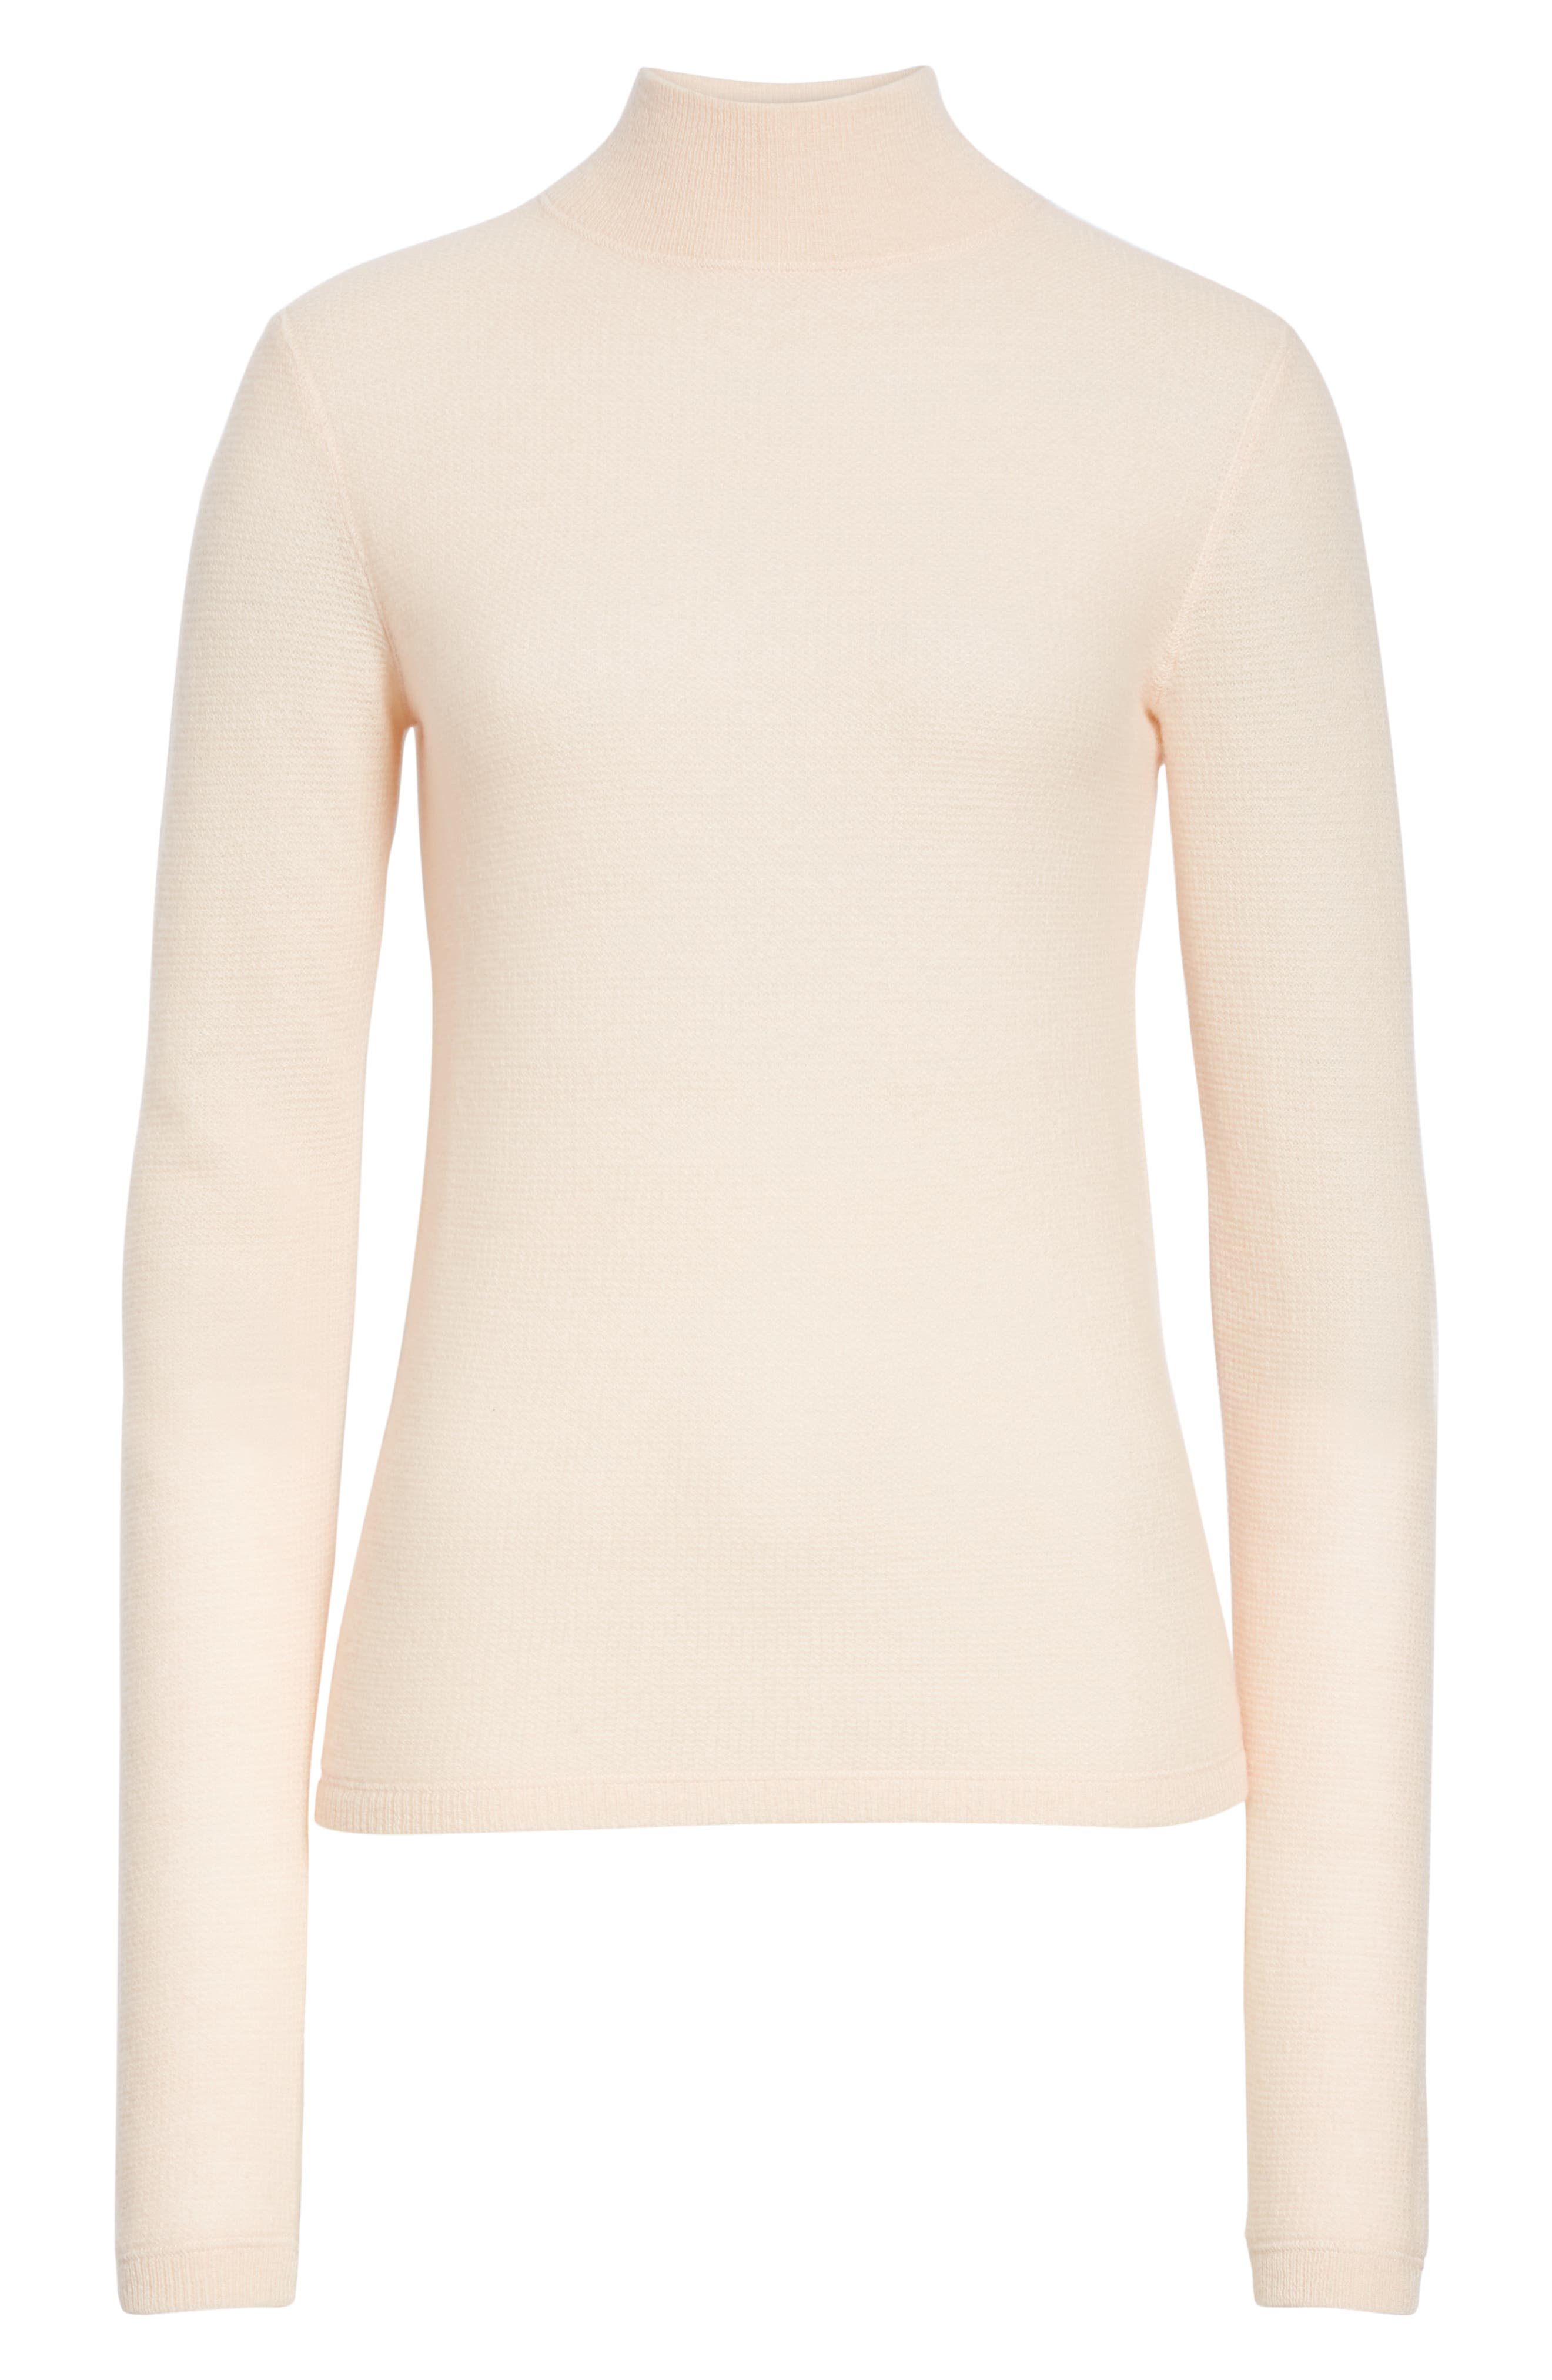 VINCE,                             Waffle Mock Neck Sweater,                             Alternate thumbnail 6, color,                             DESERT ROSE